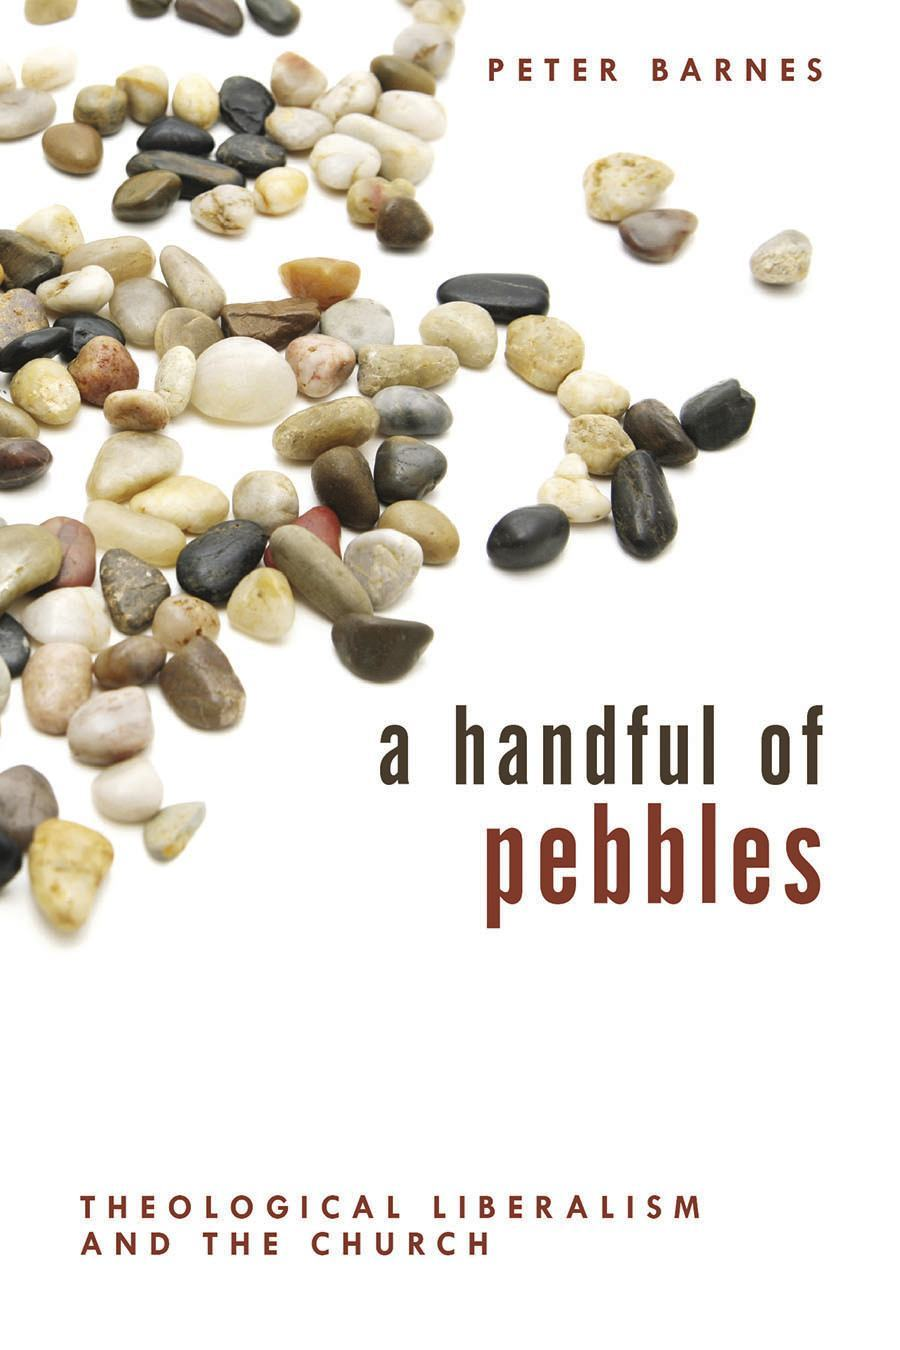 Book Cover for 'A Handful of Pebbles'